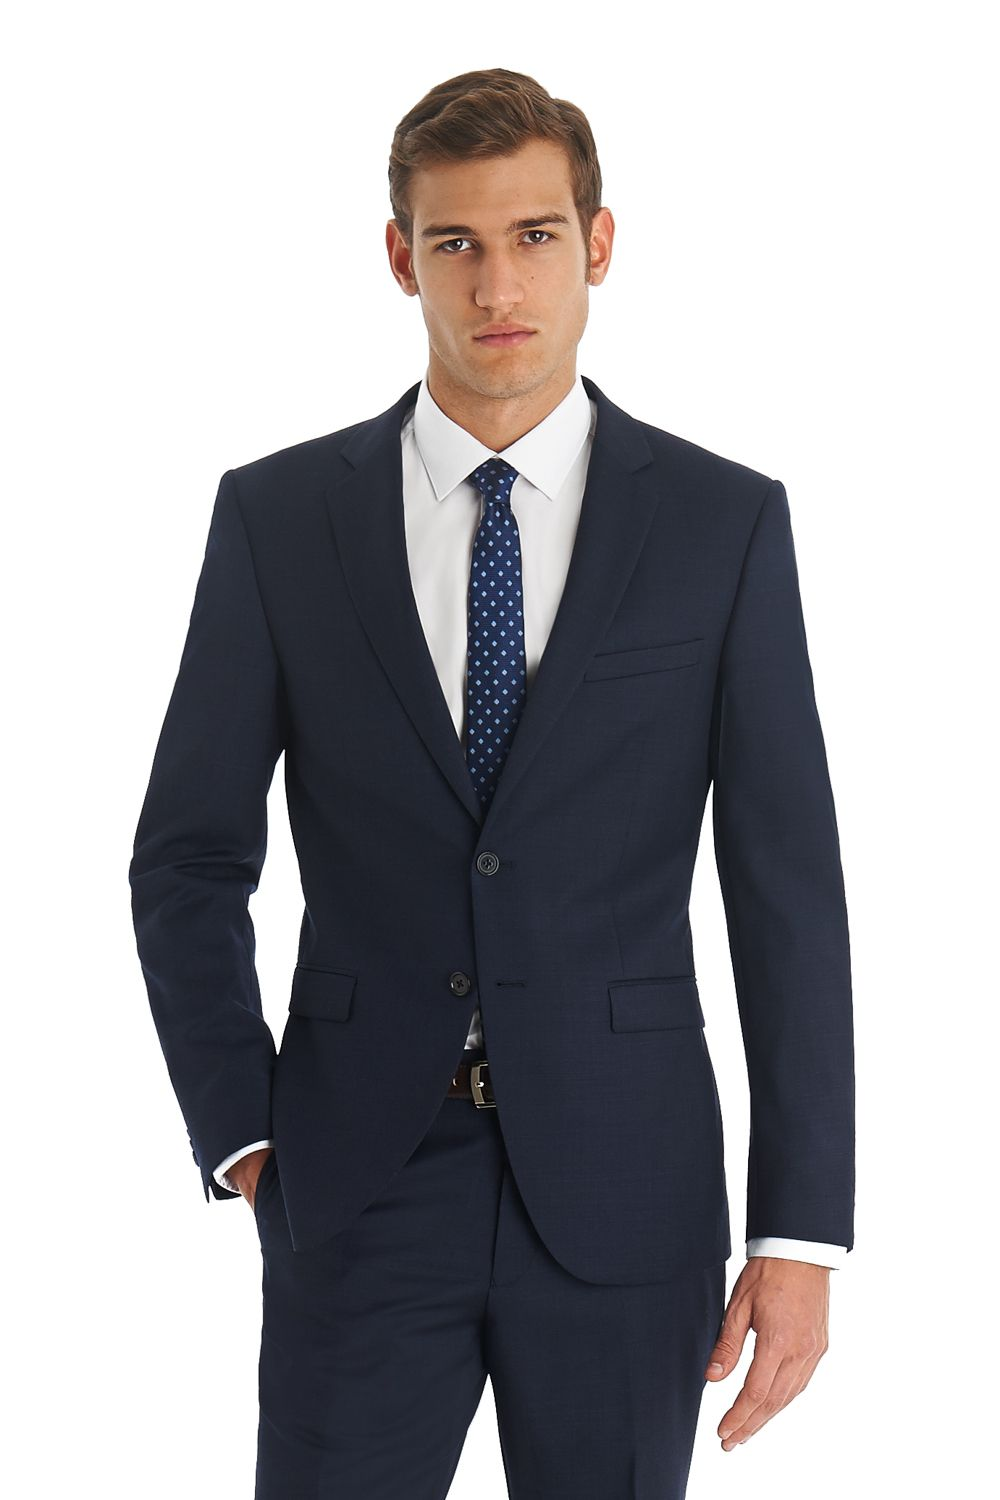 DKNY single breasted two button slim fit suit made from 100% Wool